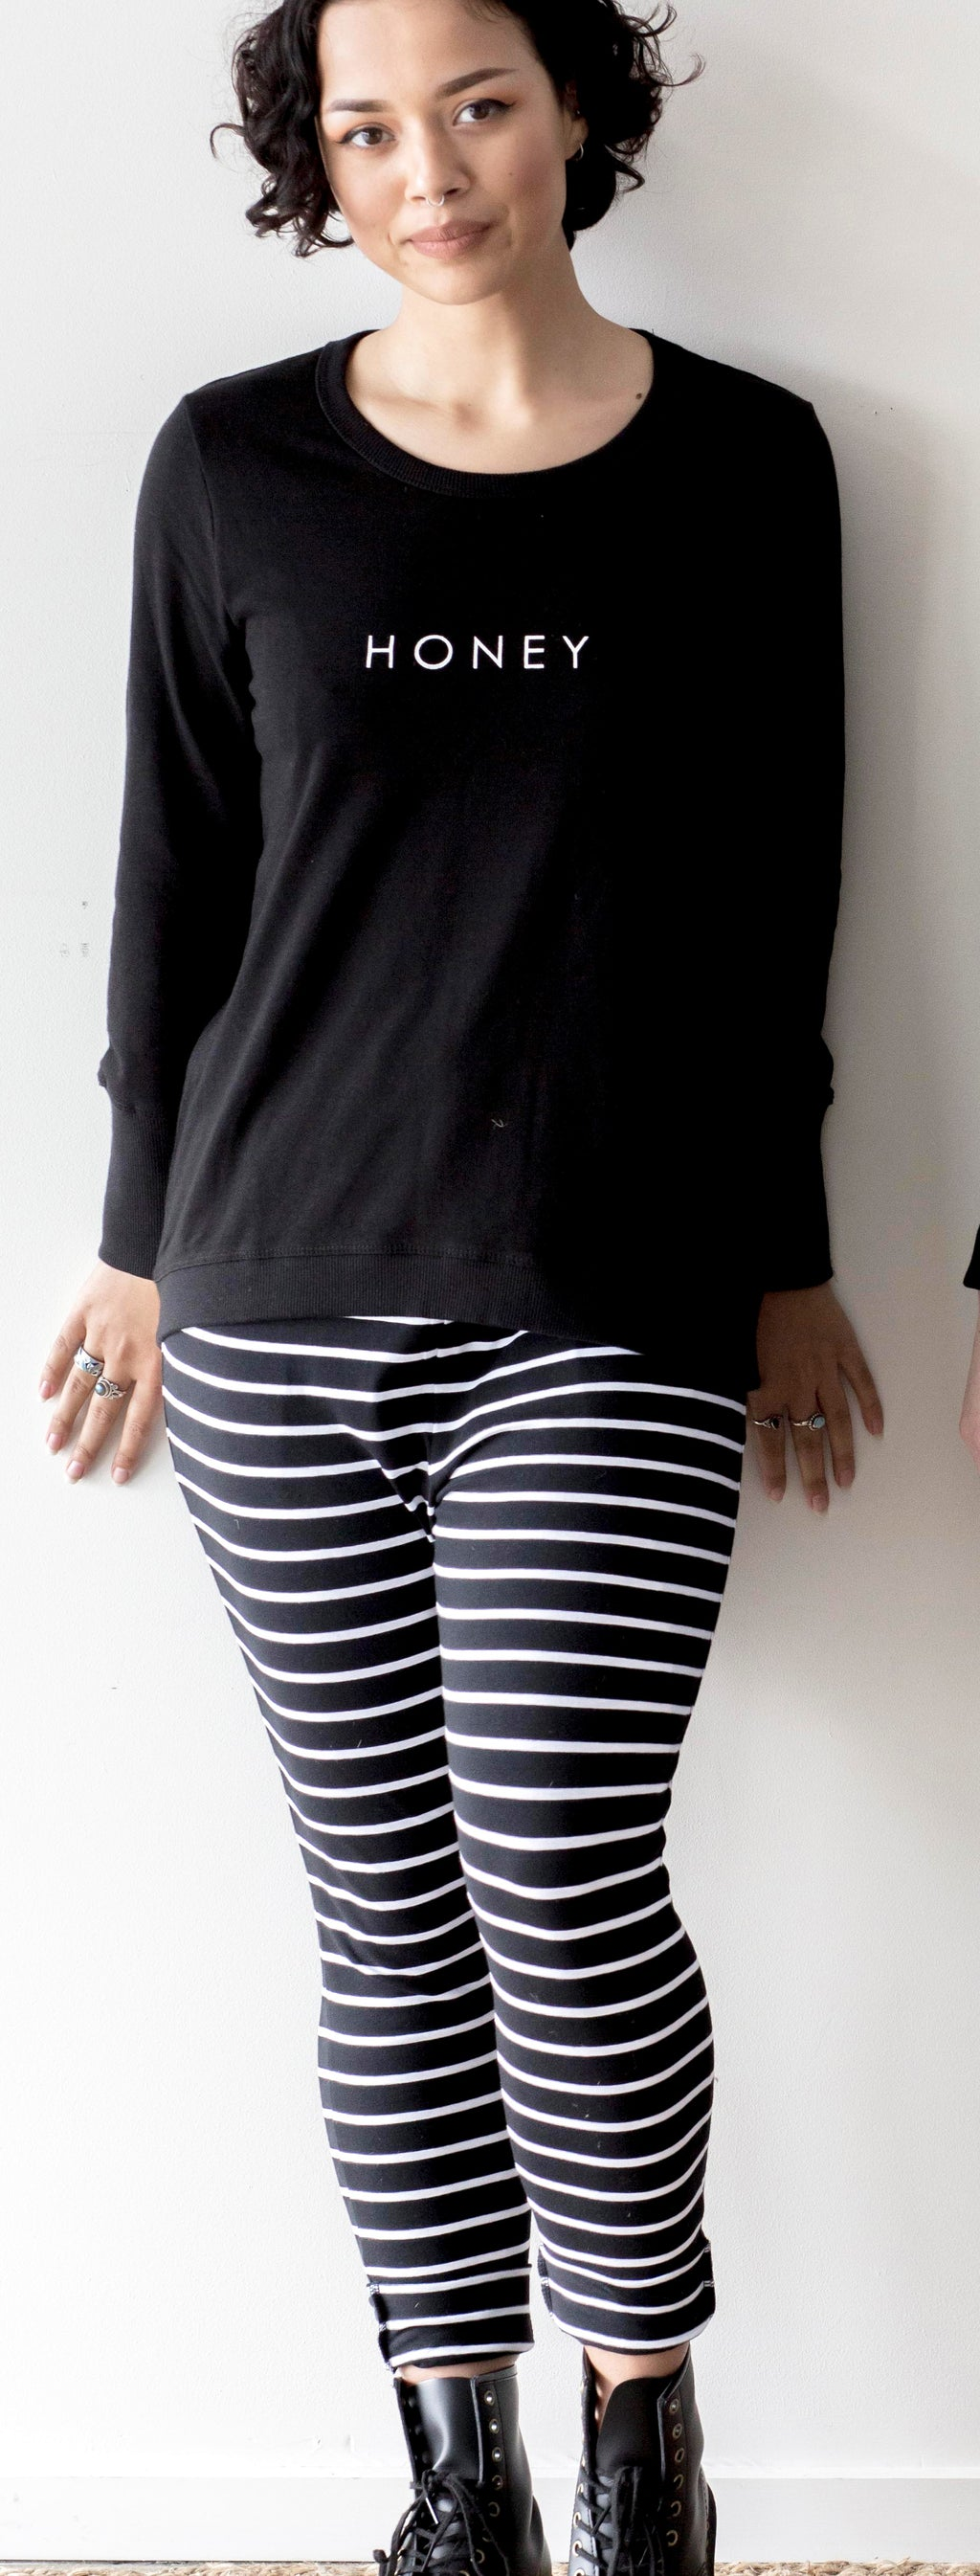 Black & White Stripe Lounge Pant